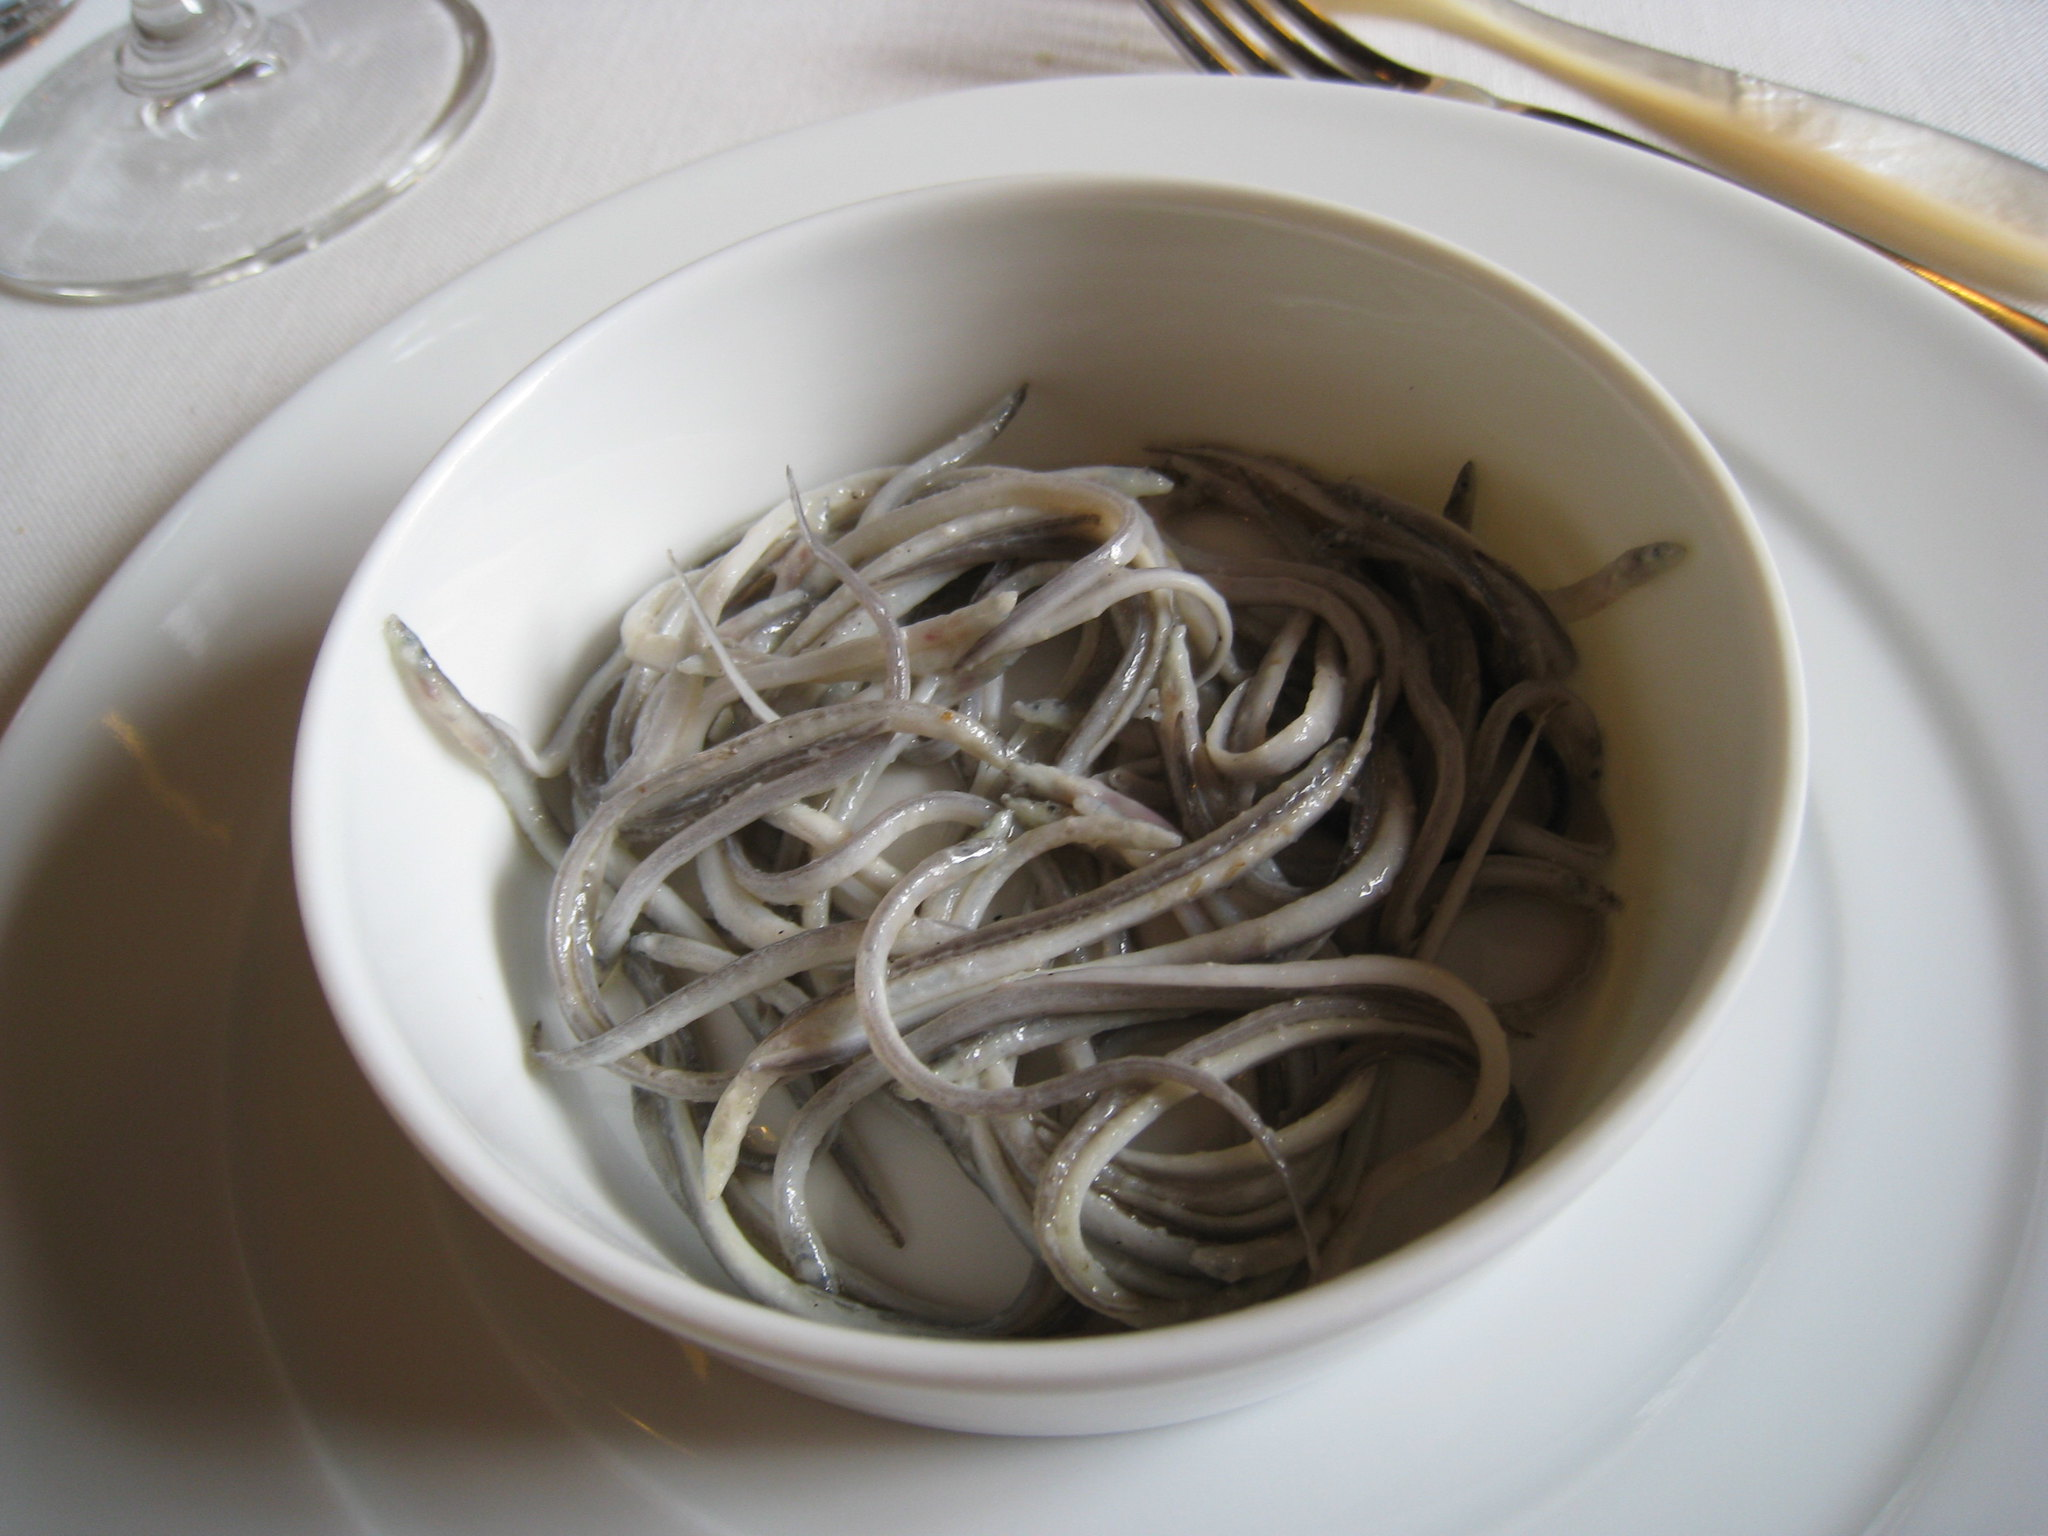 NGO Traffic warns of rise in international trafficking of glass eels - Illicit Trade